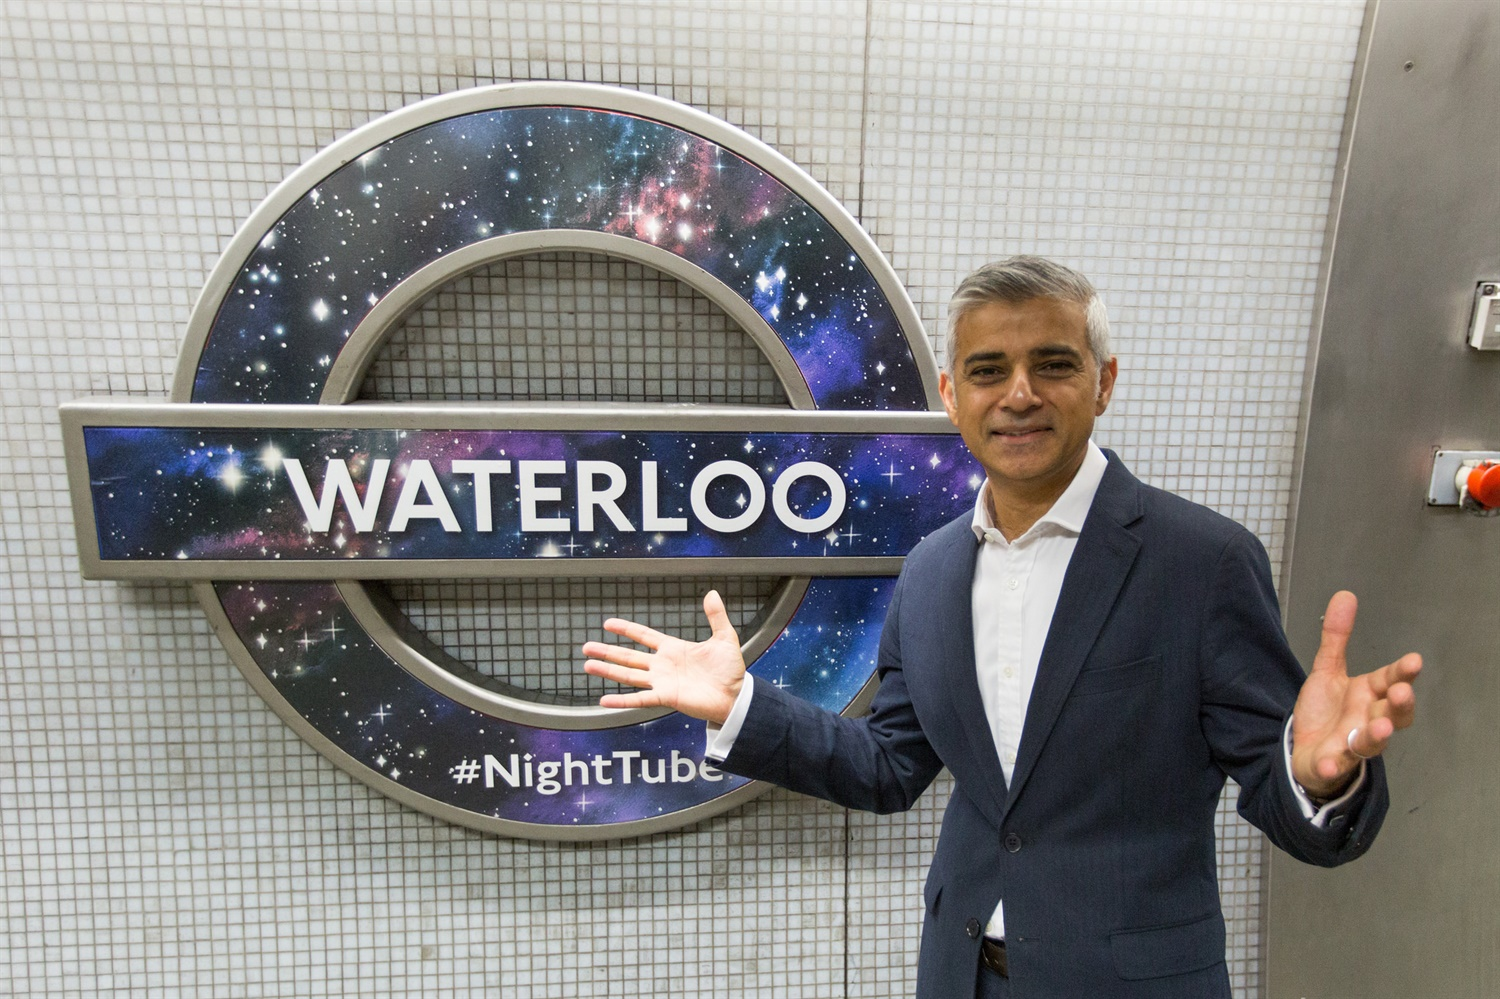 Night Tube to launch on Northern Line in November